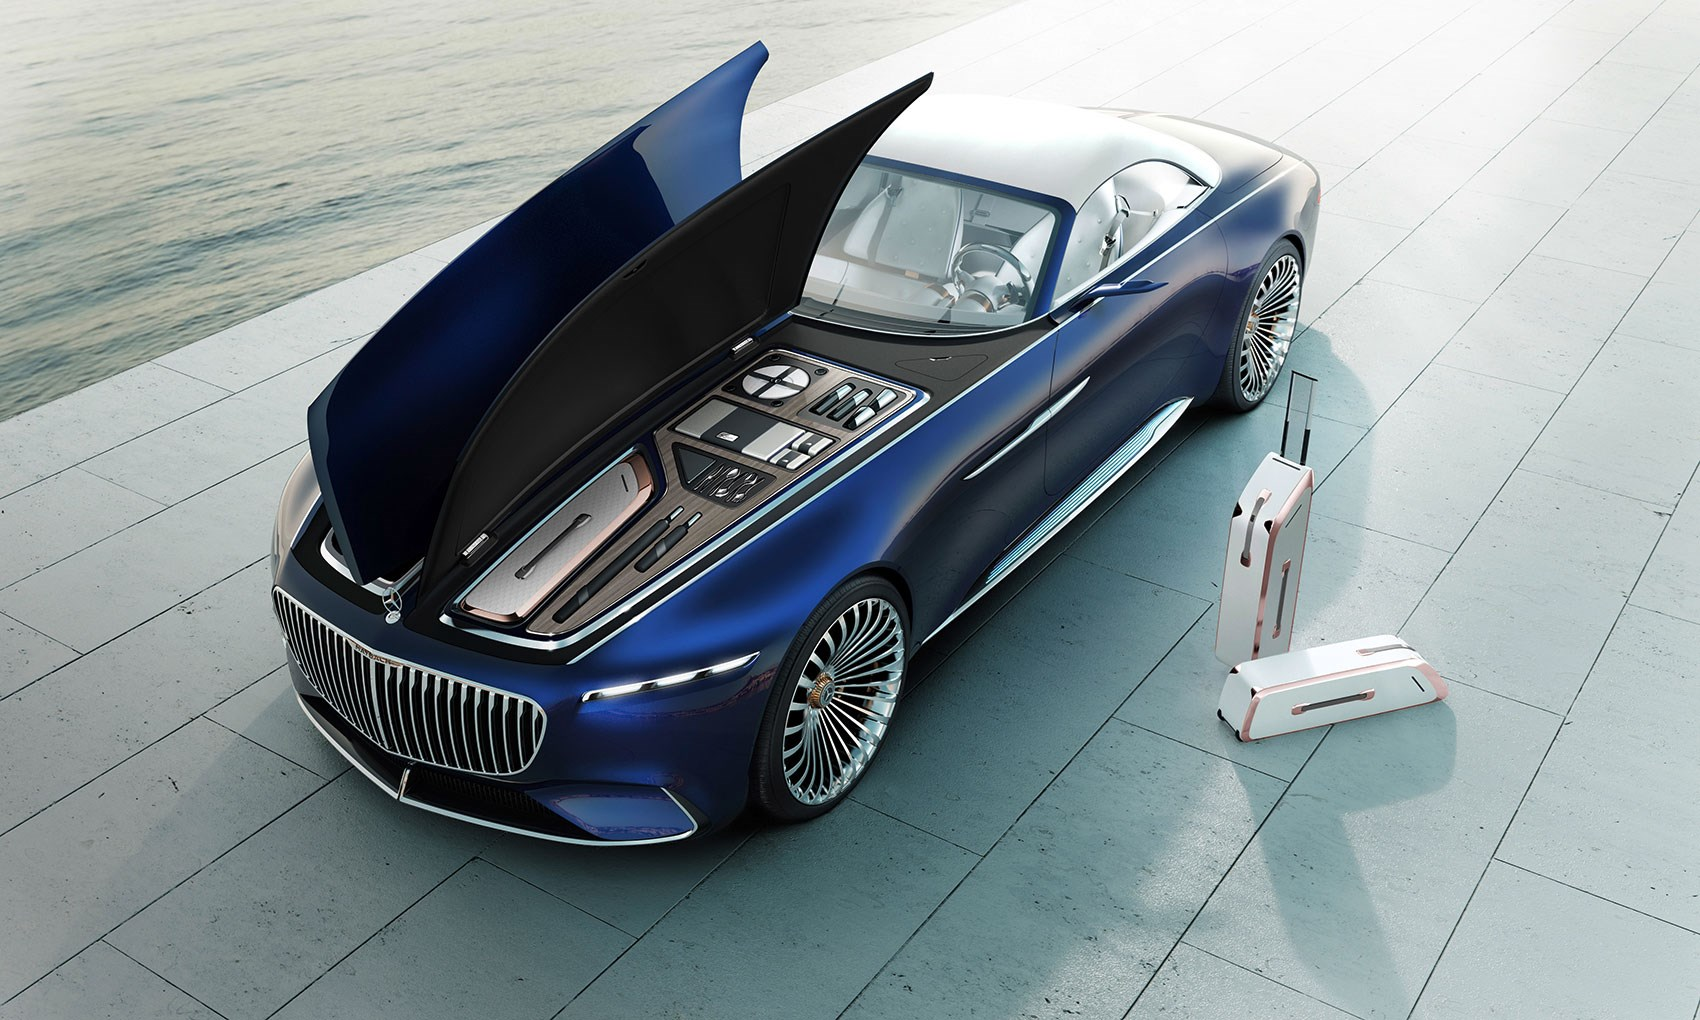 vision mercedes-maybach 6 cabriolet: news, photos, specs | car magazine